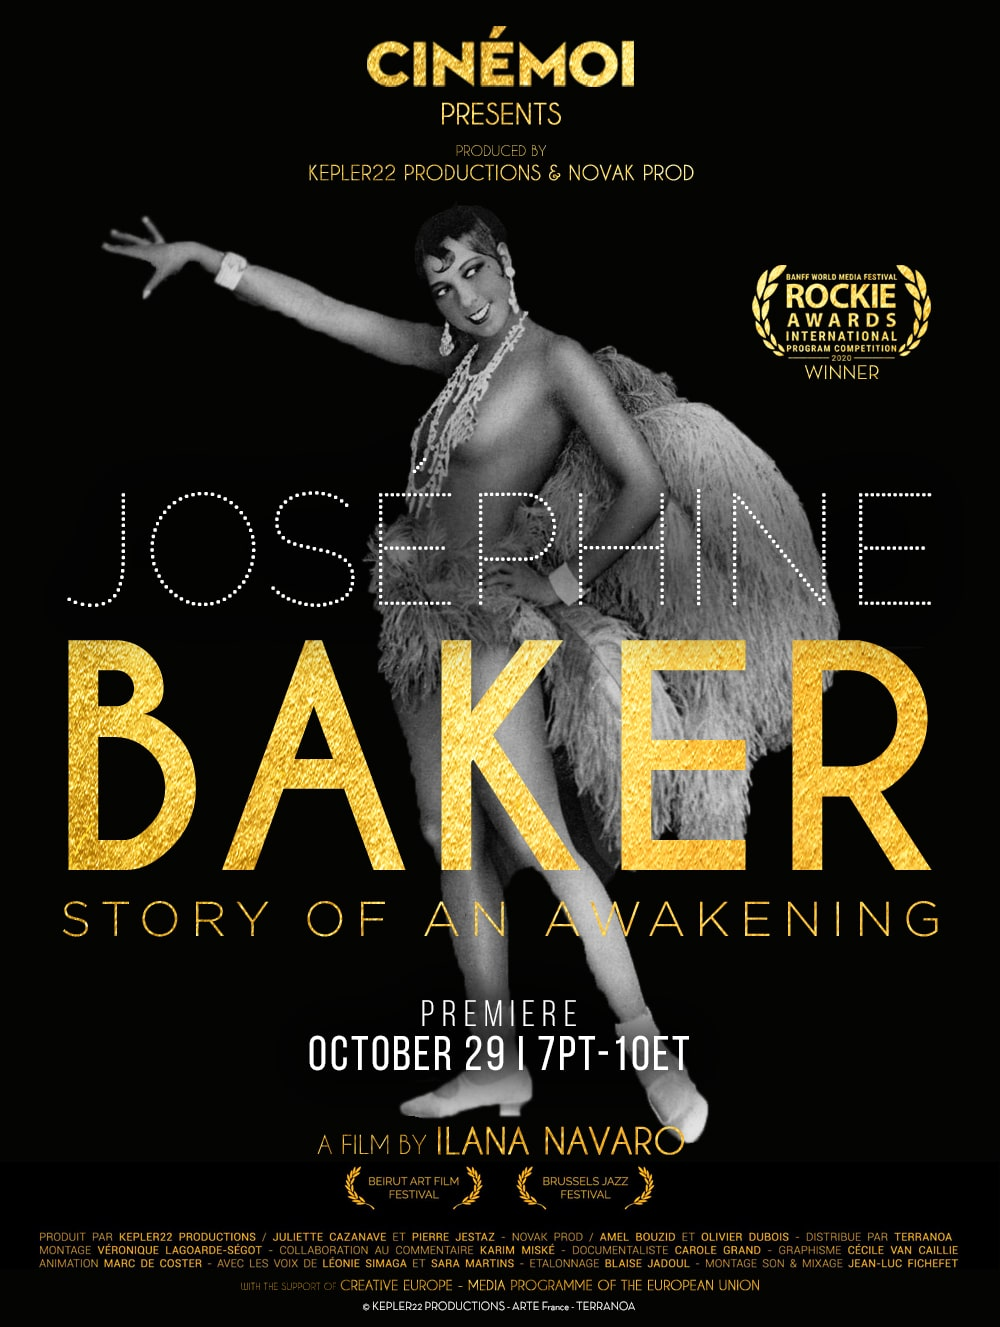 CINÉMOI Hosts Virtual Premiere in Honor of the First Black Superstar, Josephine Baker 1